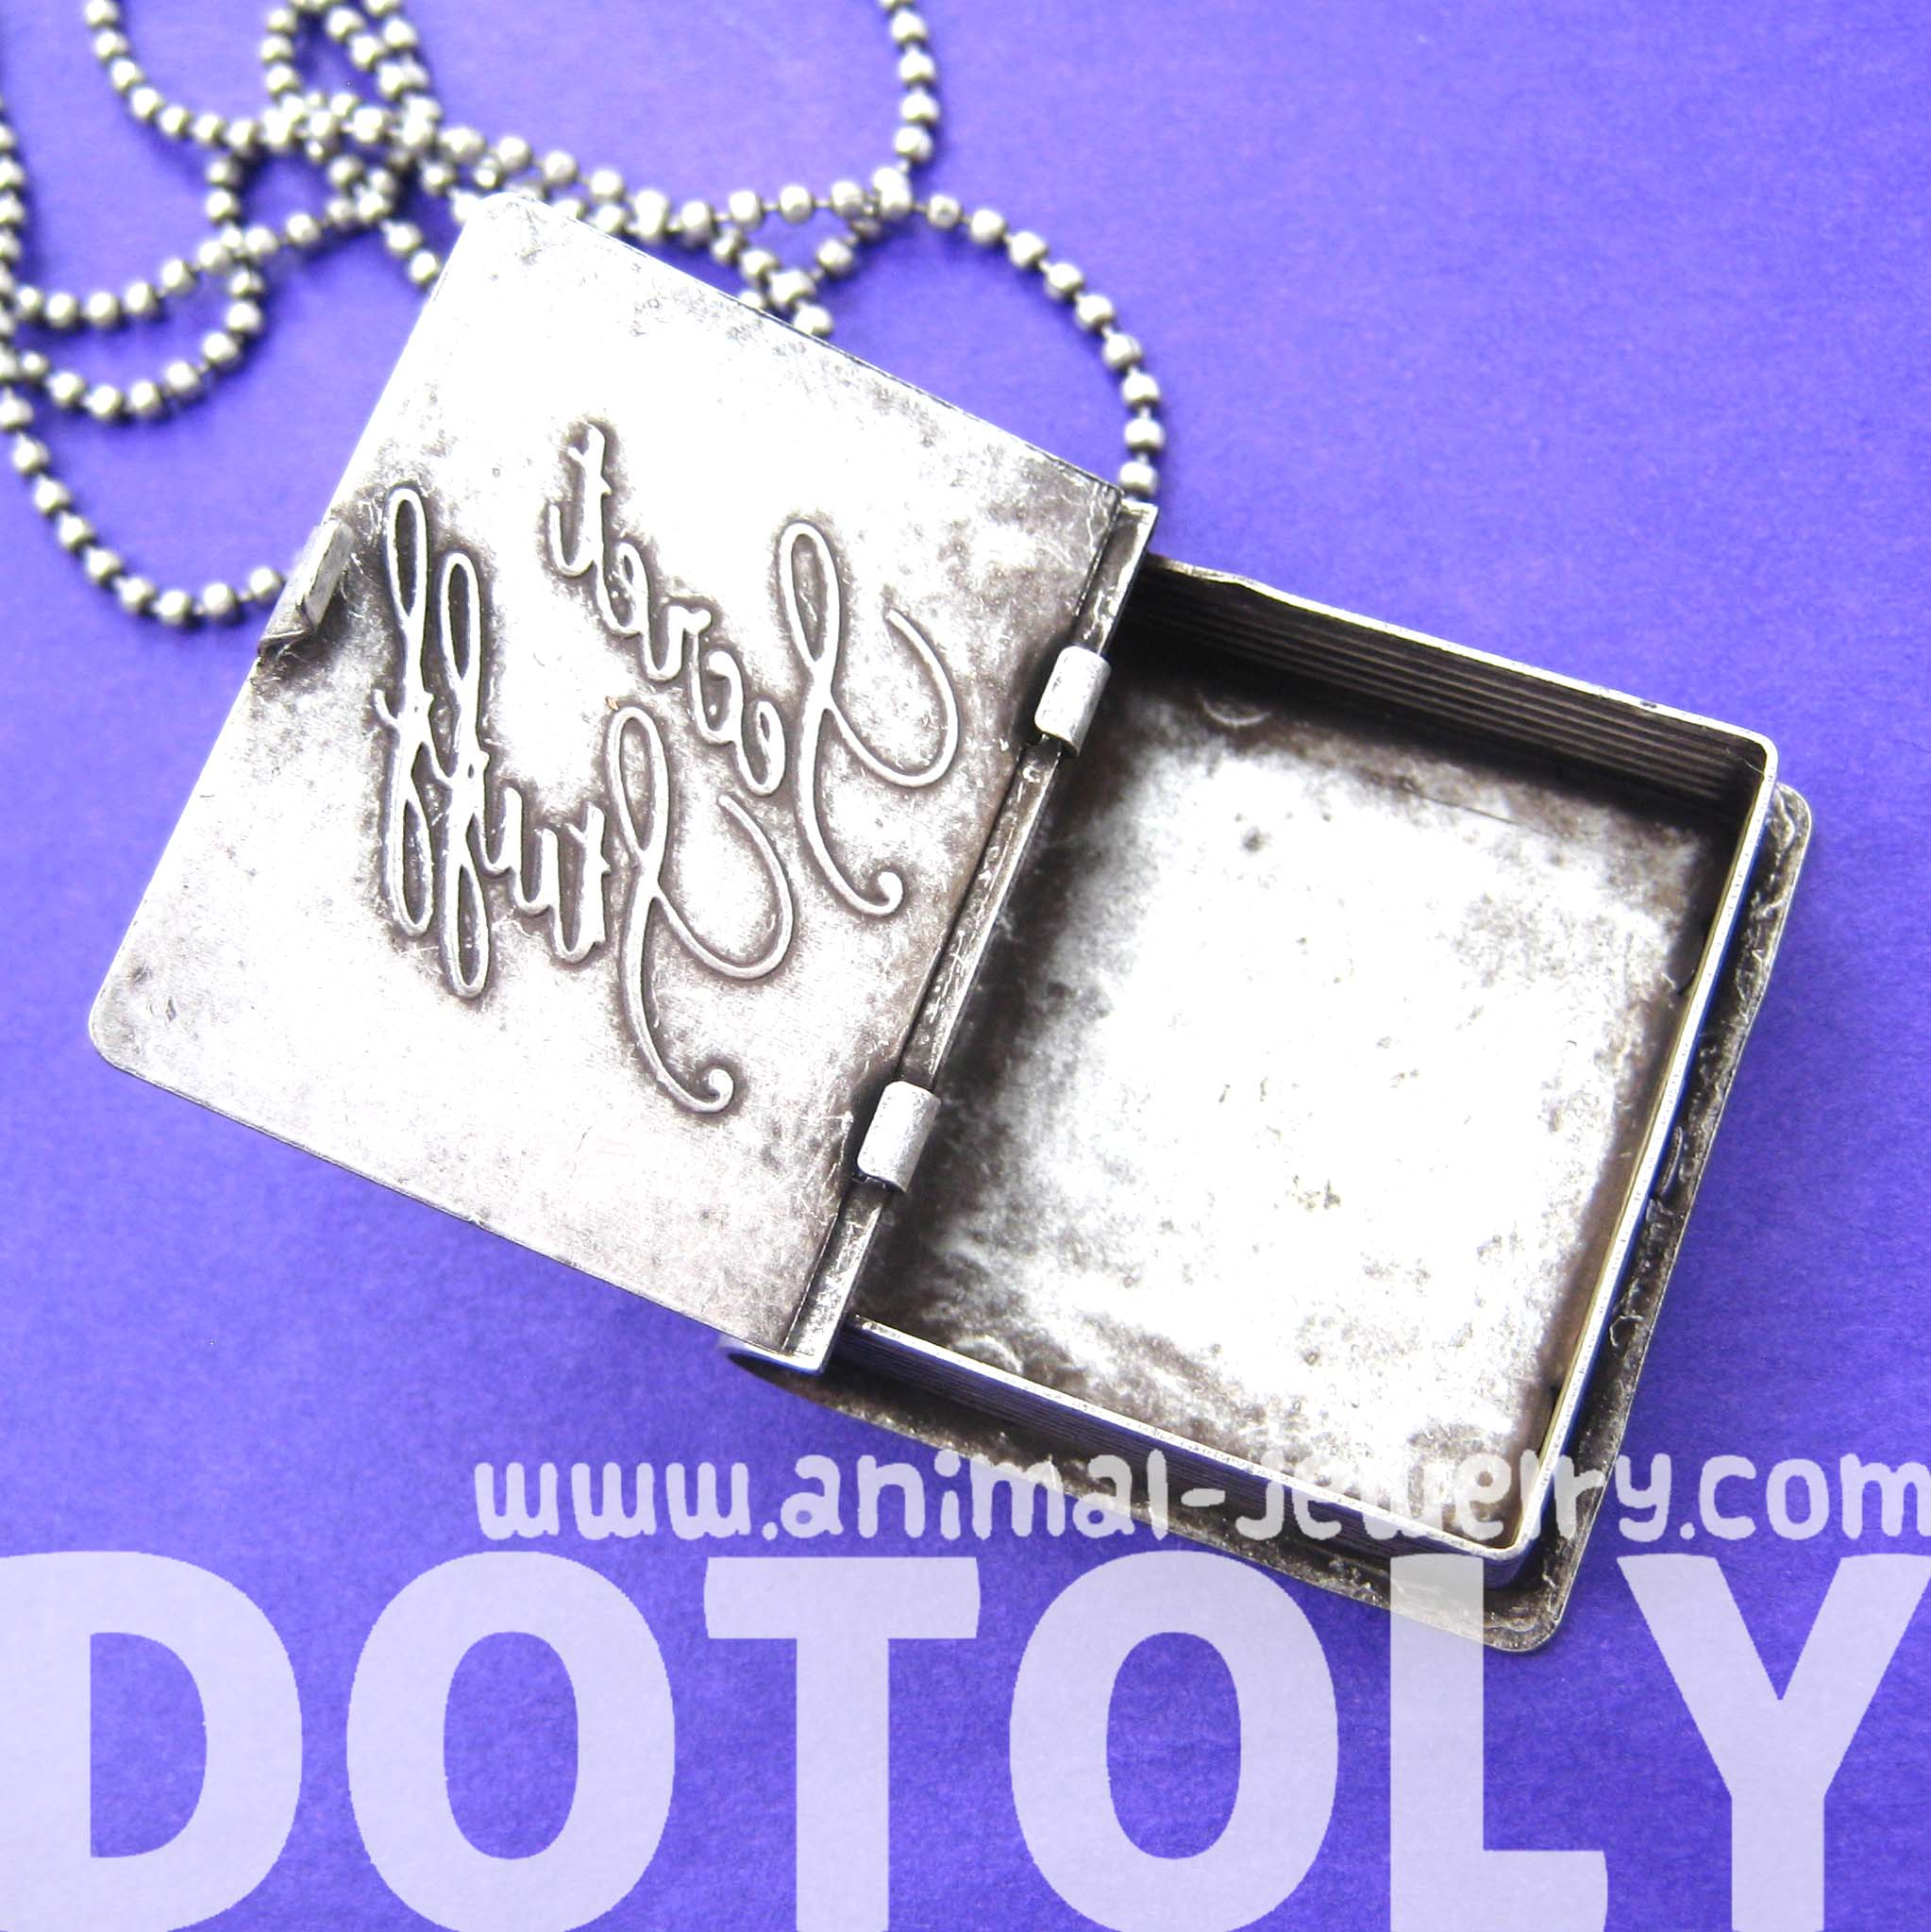 Book diary shaped locket pendant with the wordssecret stuff book diary shaped locket pendant with the wordssecret stuff etched on the front aloadofball Gallery